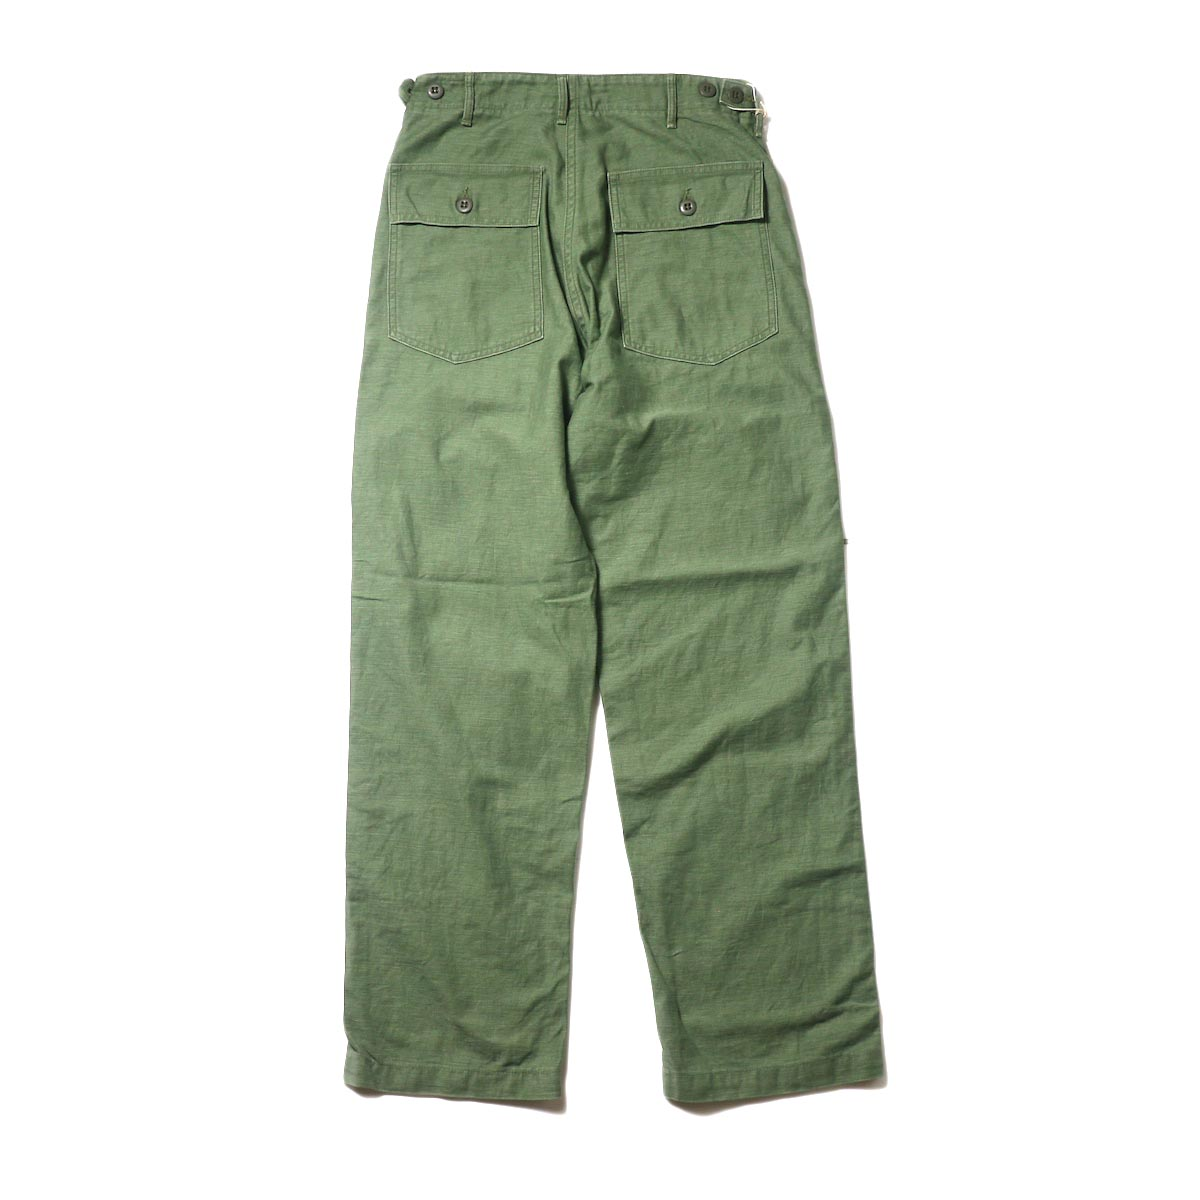 orSlow / US ARMY FATIGUE PANTS (Used Green)背面